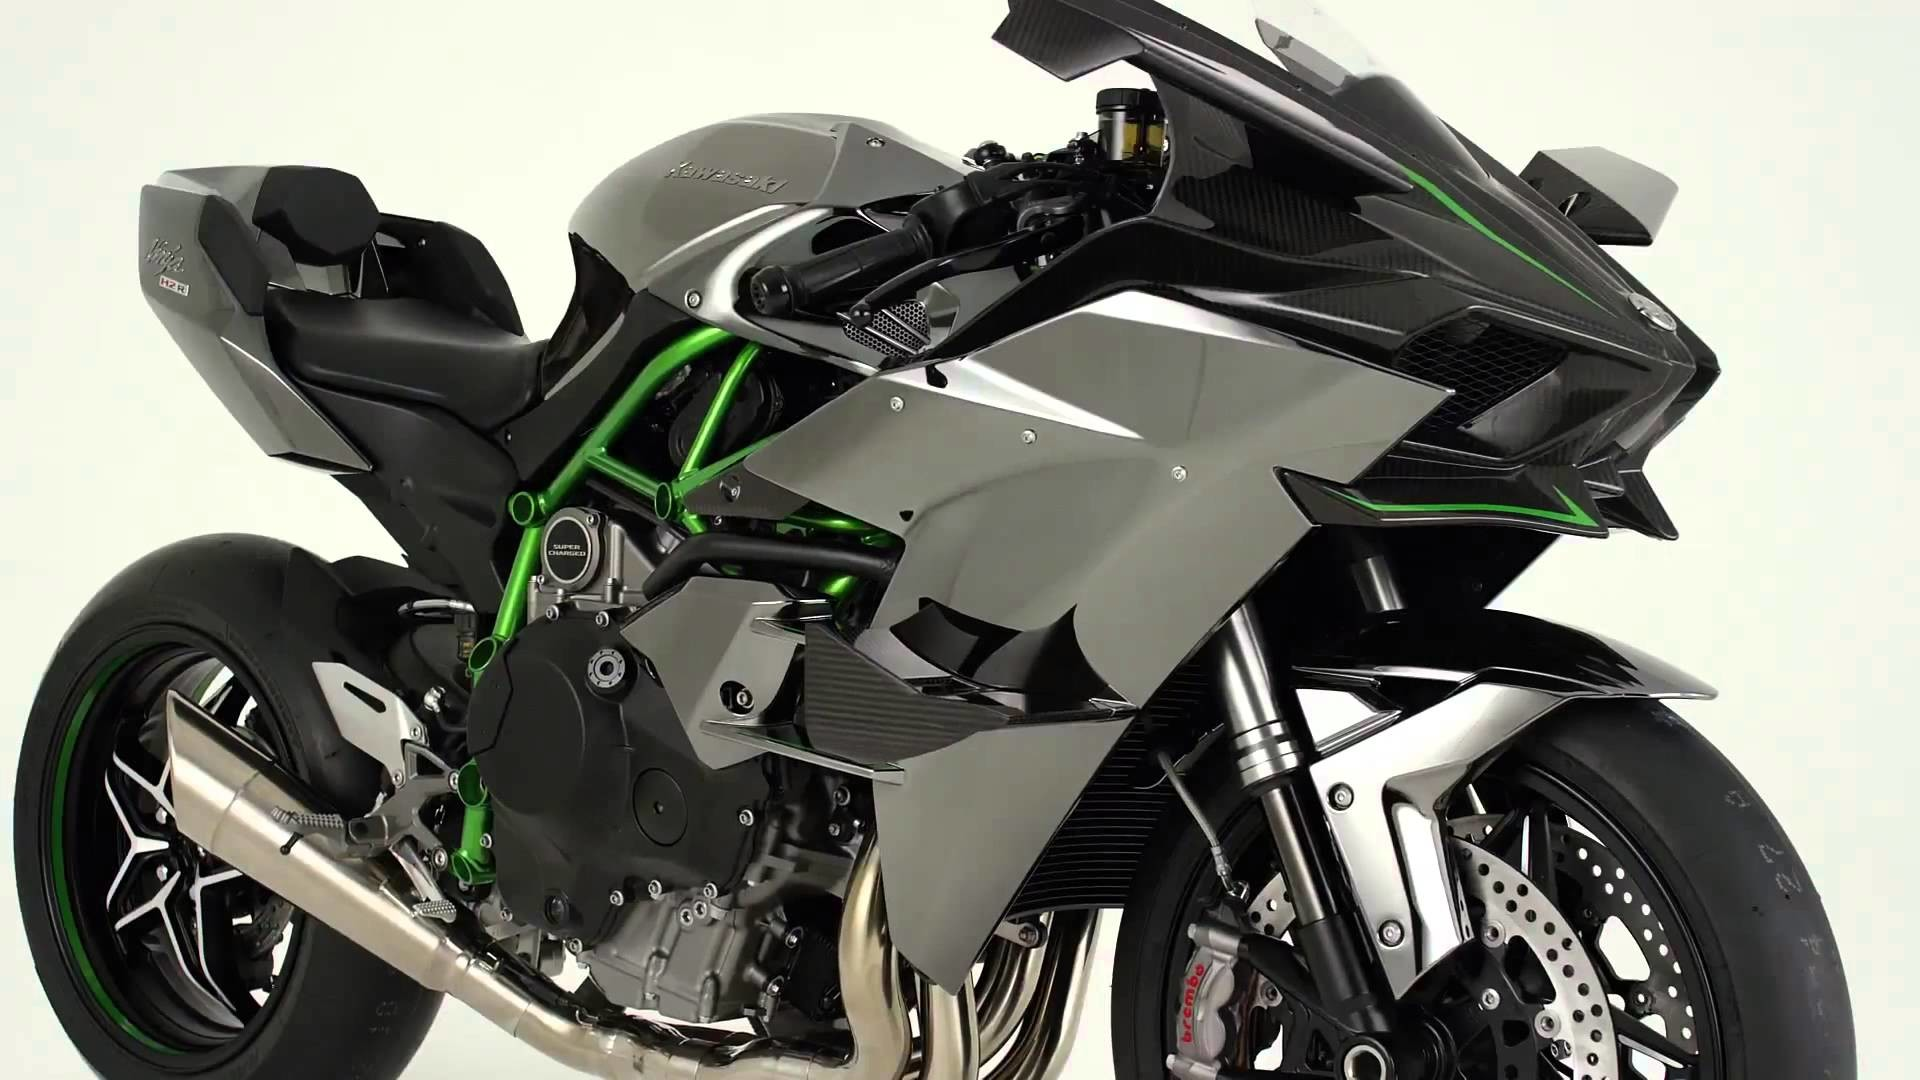 2560x1600 Kawasaki H2r Wallpaper Iphone Unique Pin By Hdqwalls On Bikes Wallpapers Pinterest